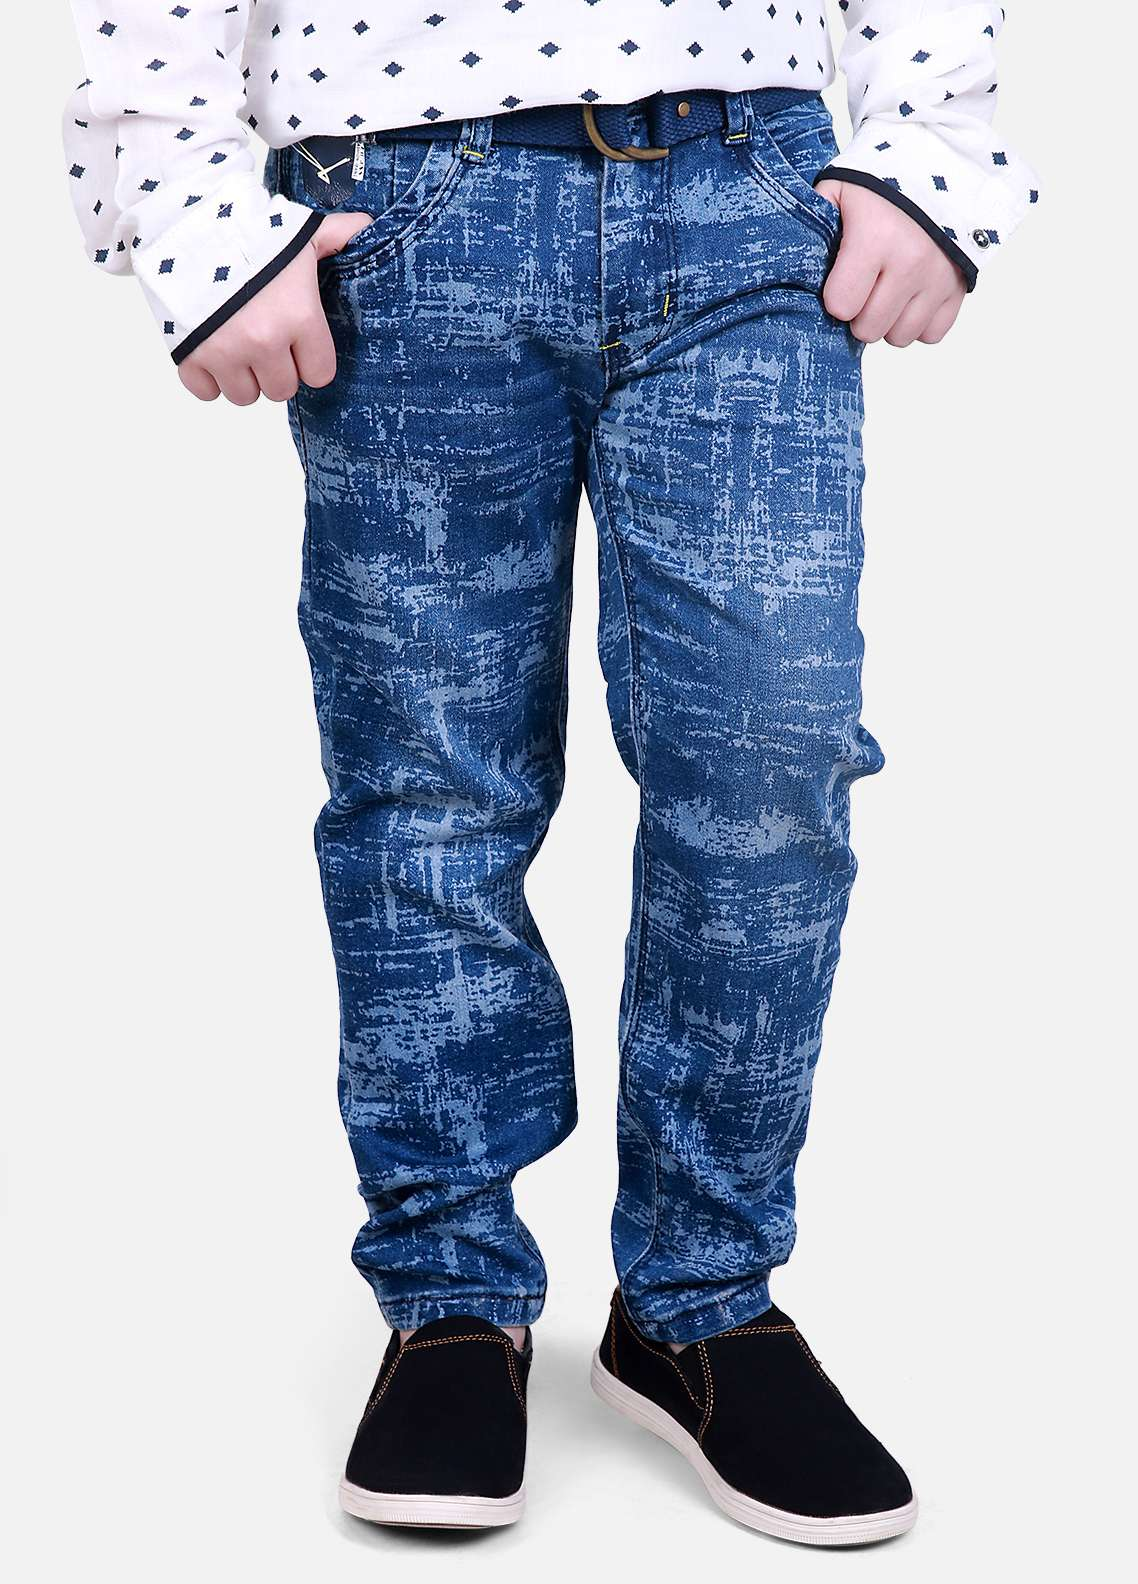 Edenrobe Jeans Faded Boys Pants - Blue EDK18P 5696